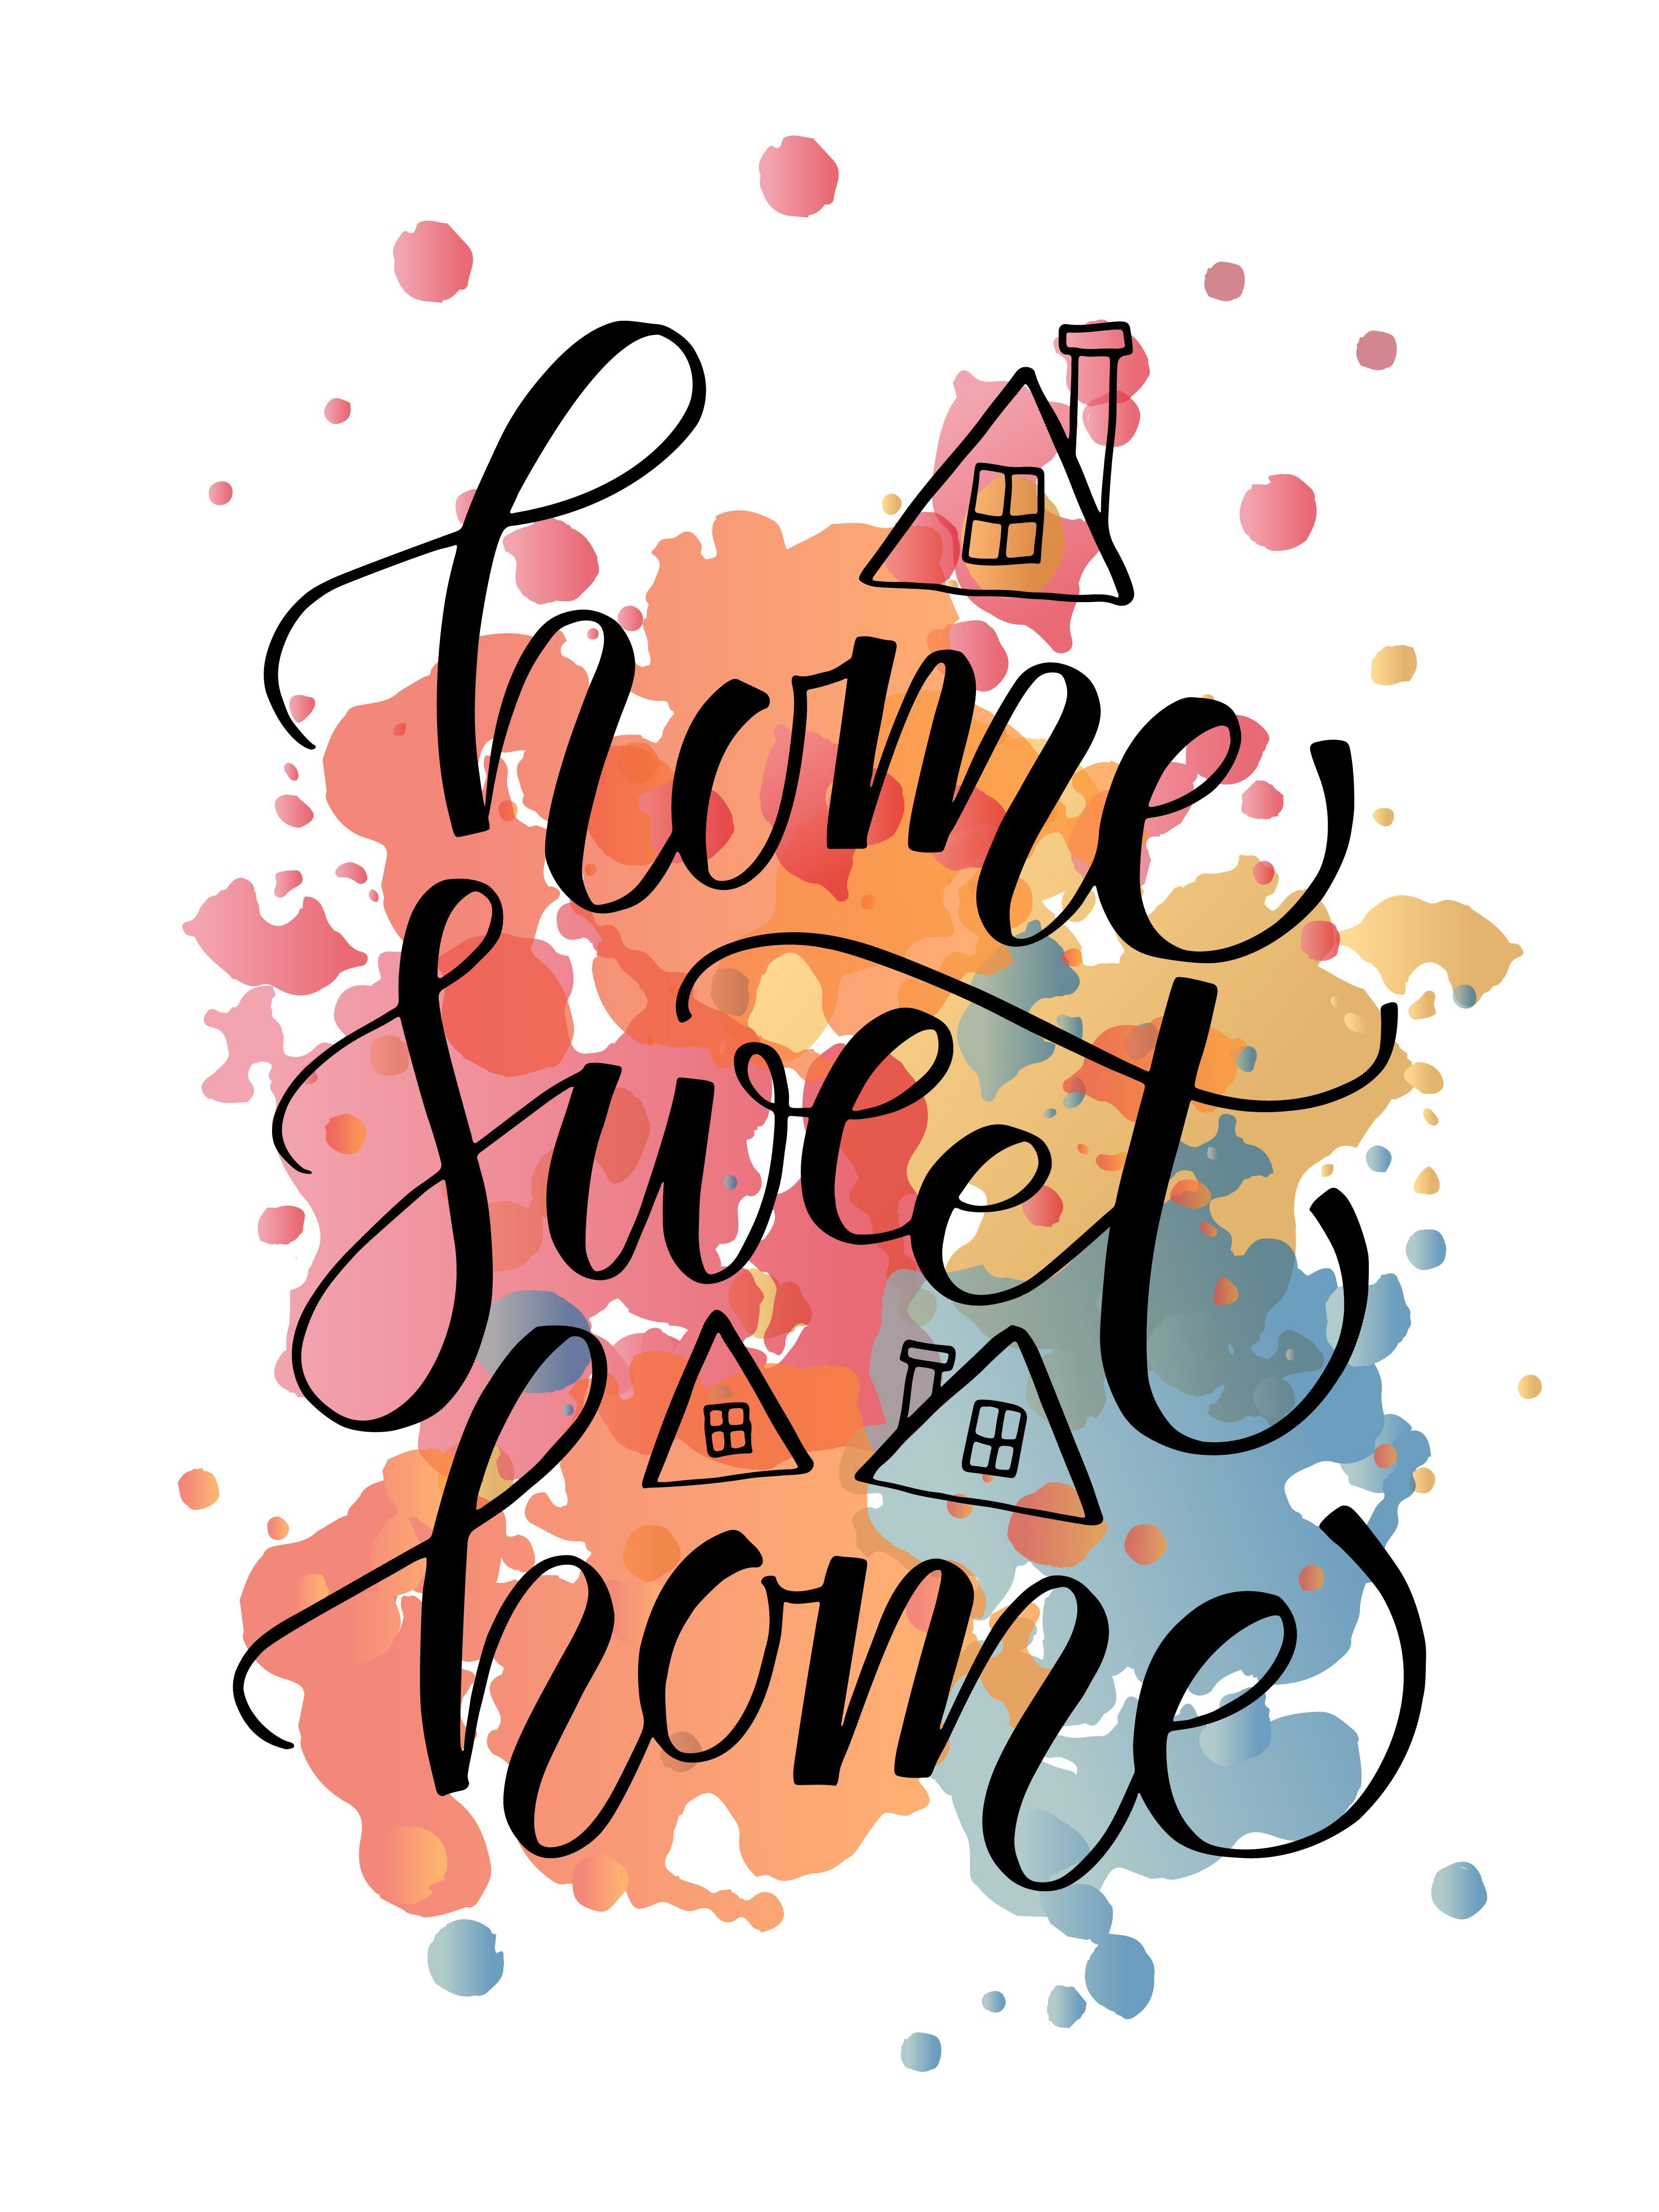 Home sweet home lettering card by alps view art on